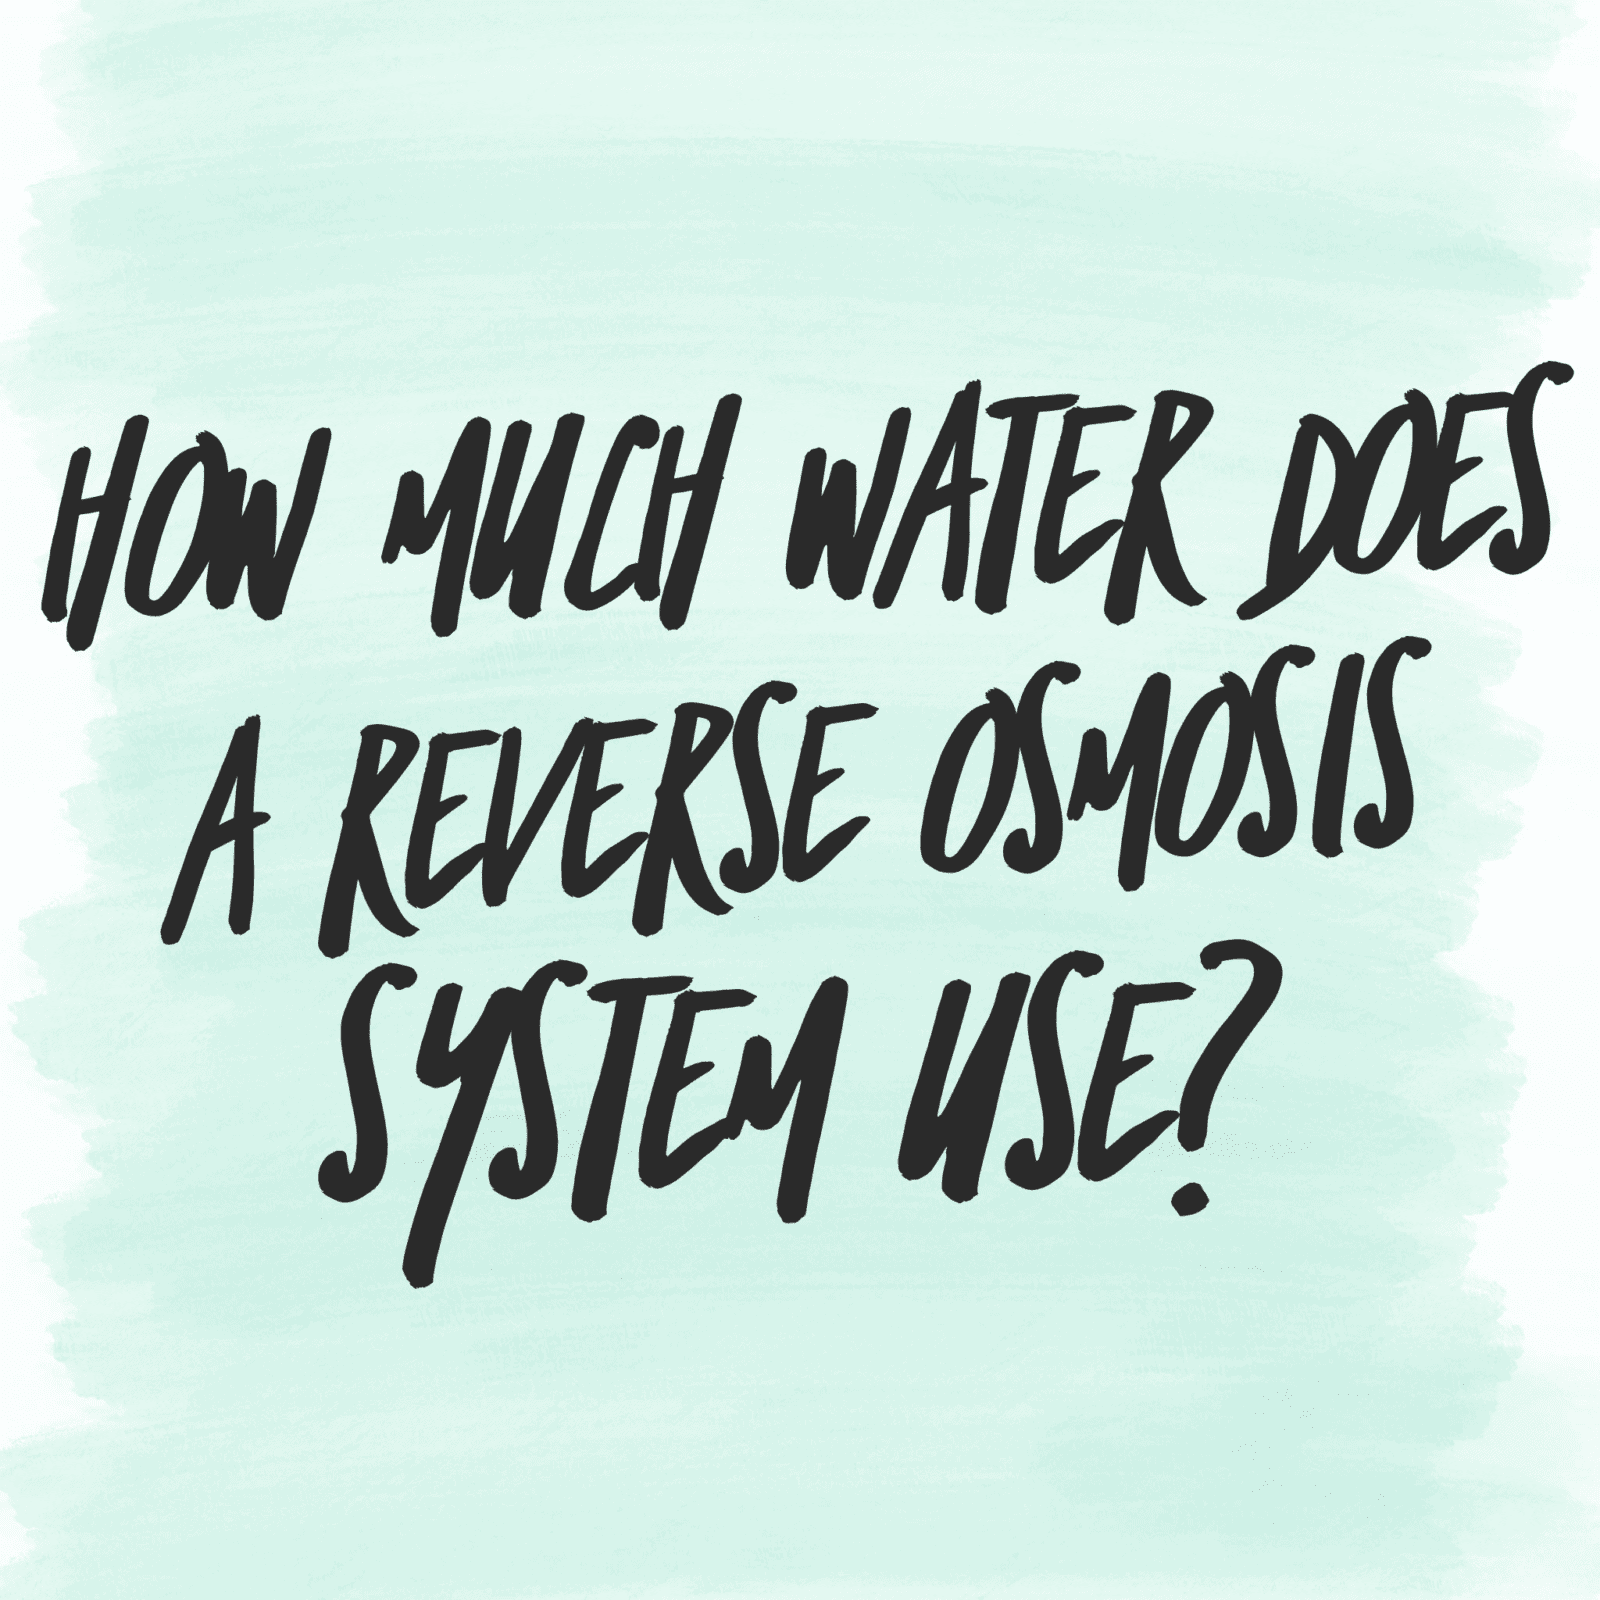 How much water reverse osmosis waste - ro waste water - best alternative to reverse osmosis - latest ro technology